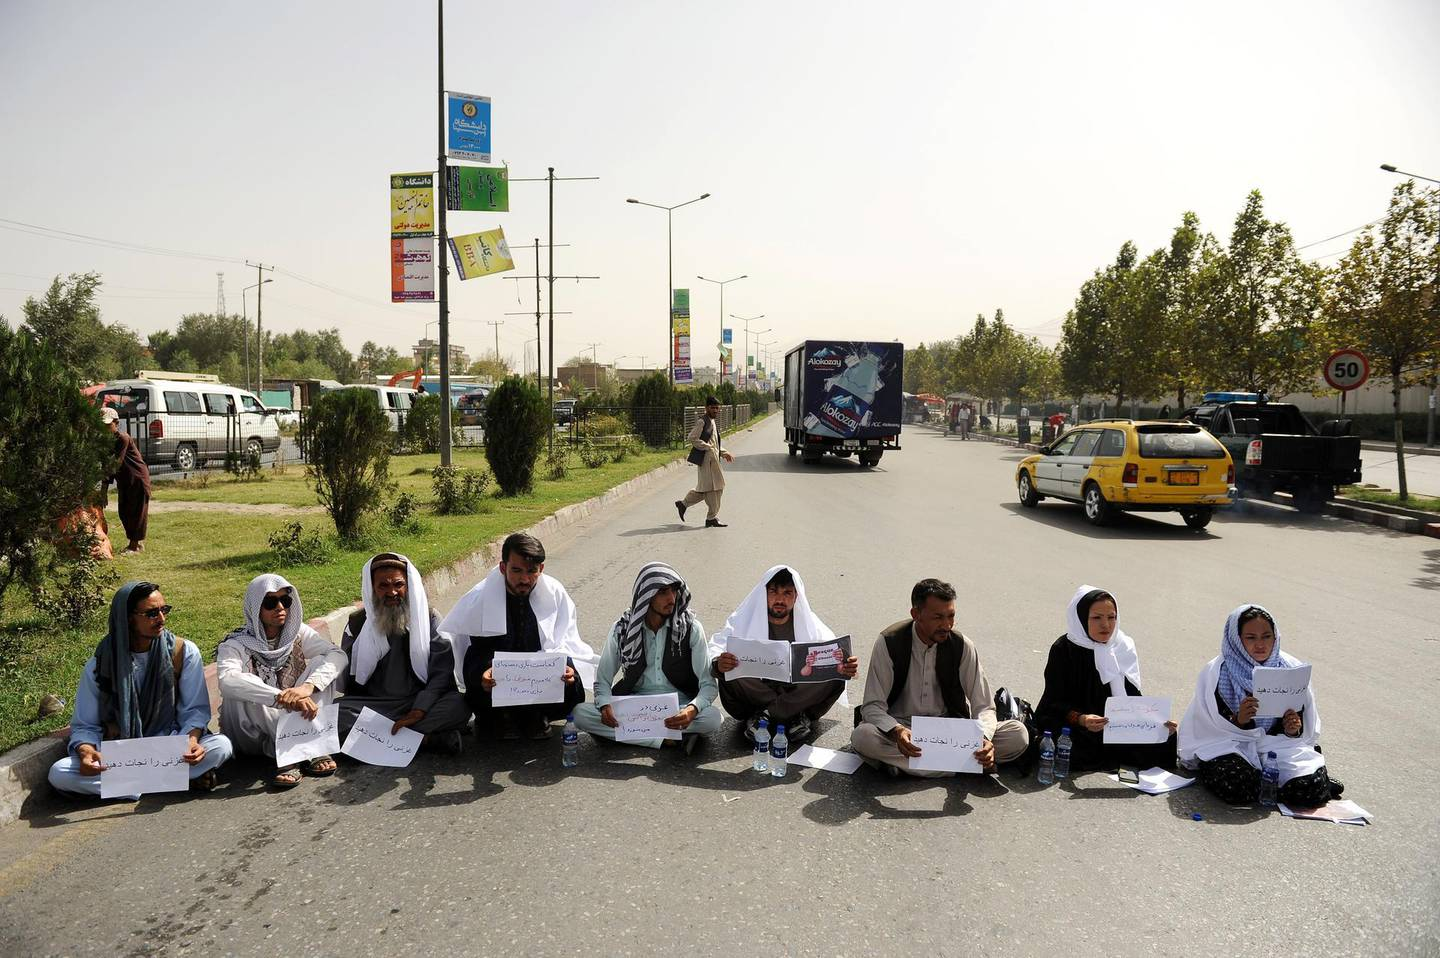 epa06947731 Two Afghan civil society women along with six other men wear gravecloths, hold placards written in farsi 'Rescue Ghazni Province' and block a busy road to pressure government for securing Ghazni province, in downtown Kabul, Afghanistan, 13 August 2018. The combat for the strategic city of Ghazni province has entered its fourth day, according to officials at least 135 people most of them police officers have been killed and 170 others are injured. Afghan special forces with US air force support have started a large operation to eliminate Taliban insurgents and take back the control of the city.  EPA/JAWAD JALALI